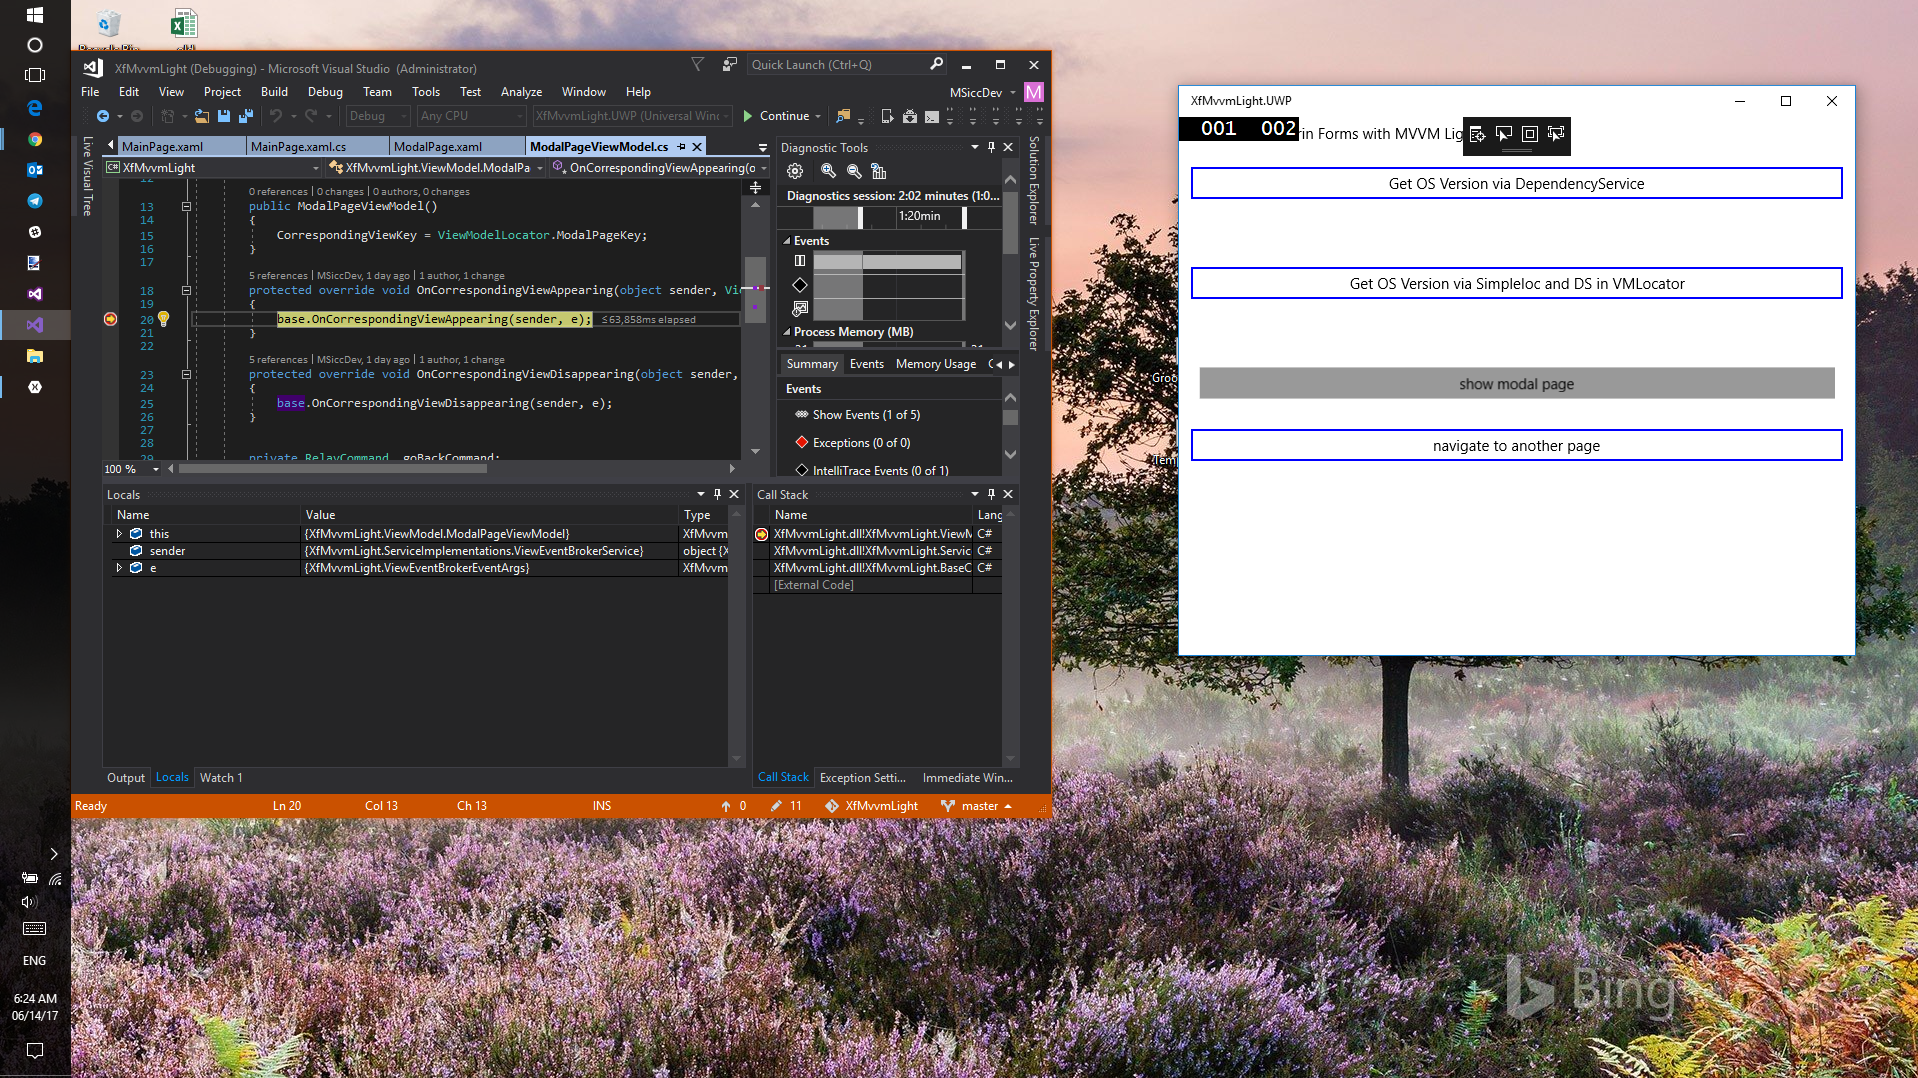 [Updated] Xamarin Forms, the MVVMLight Toolkit and I: navigation and modal pages